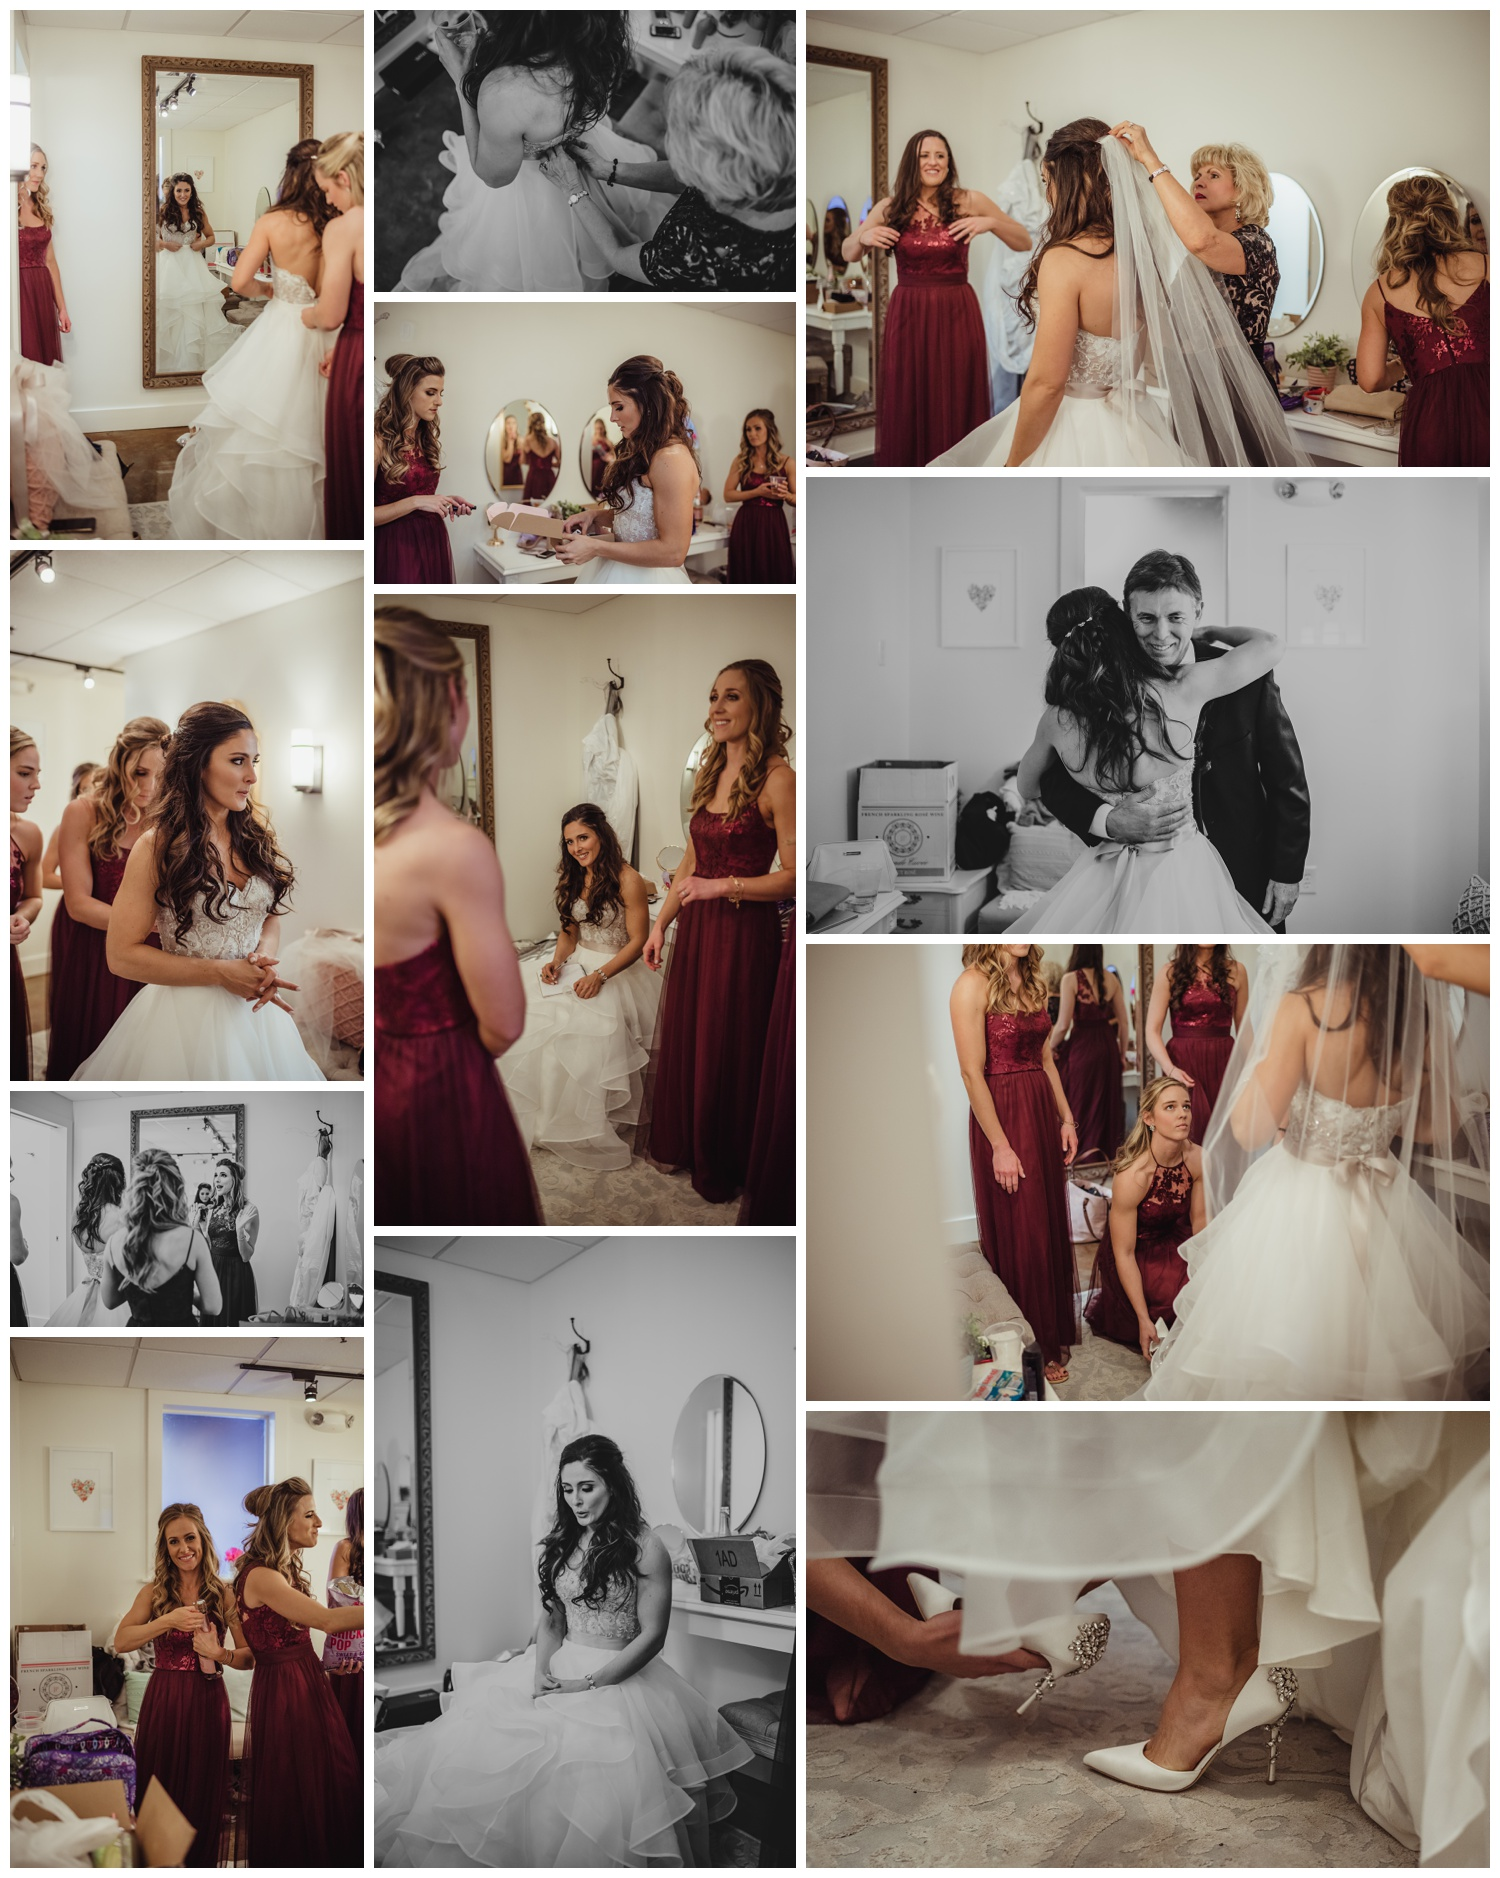 The bride got ready with all of her girls before her wedding ceremony at All Saints Chapel in Raleigh, North Carolina, pictures by Rose Trail Images.